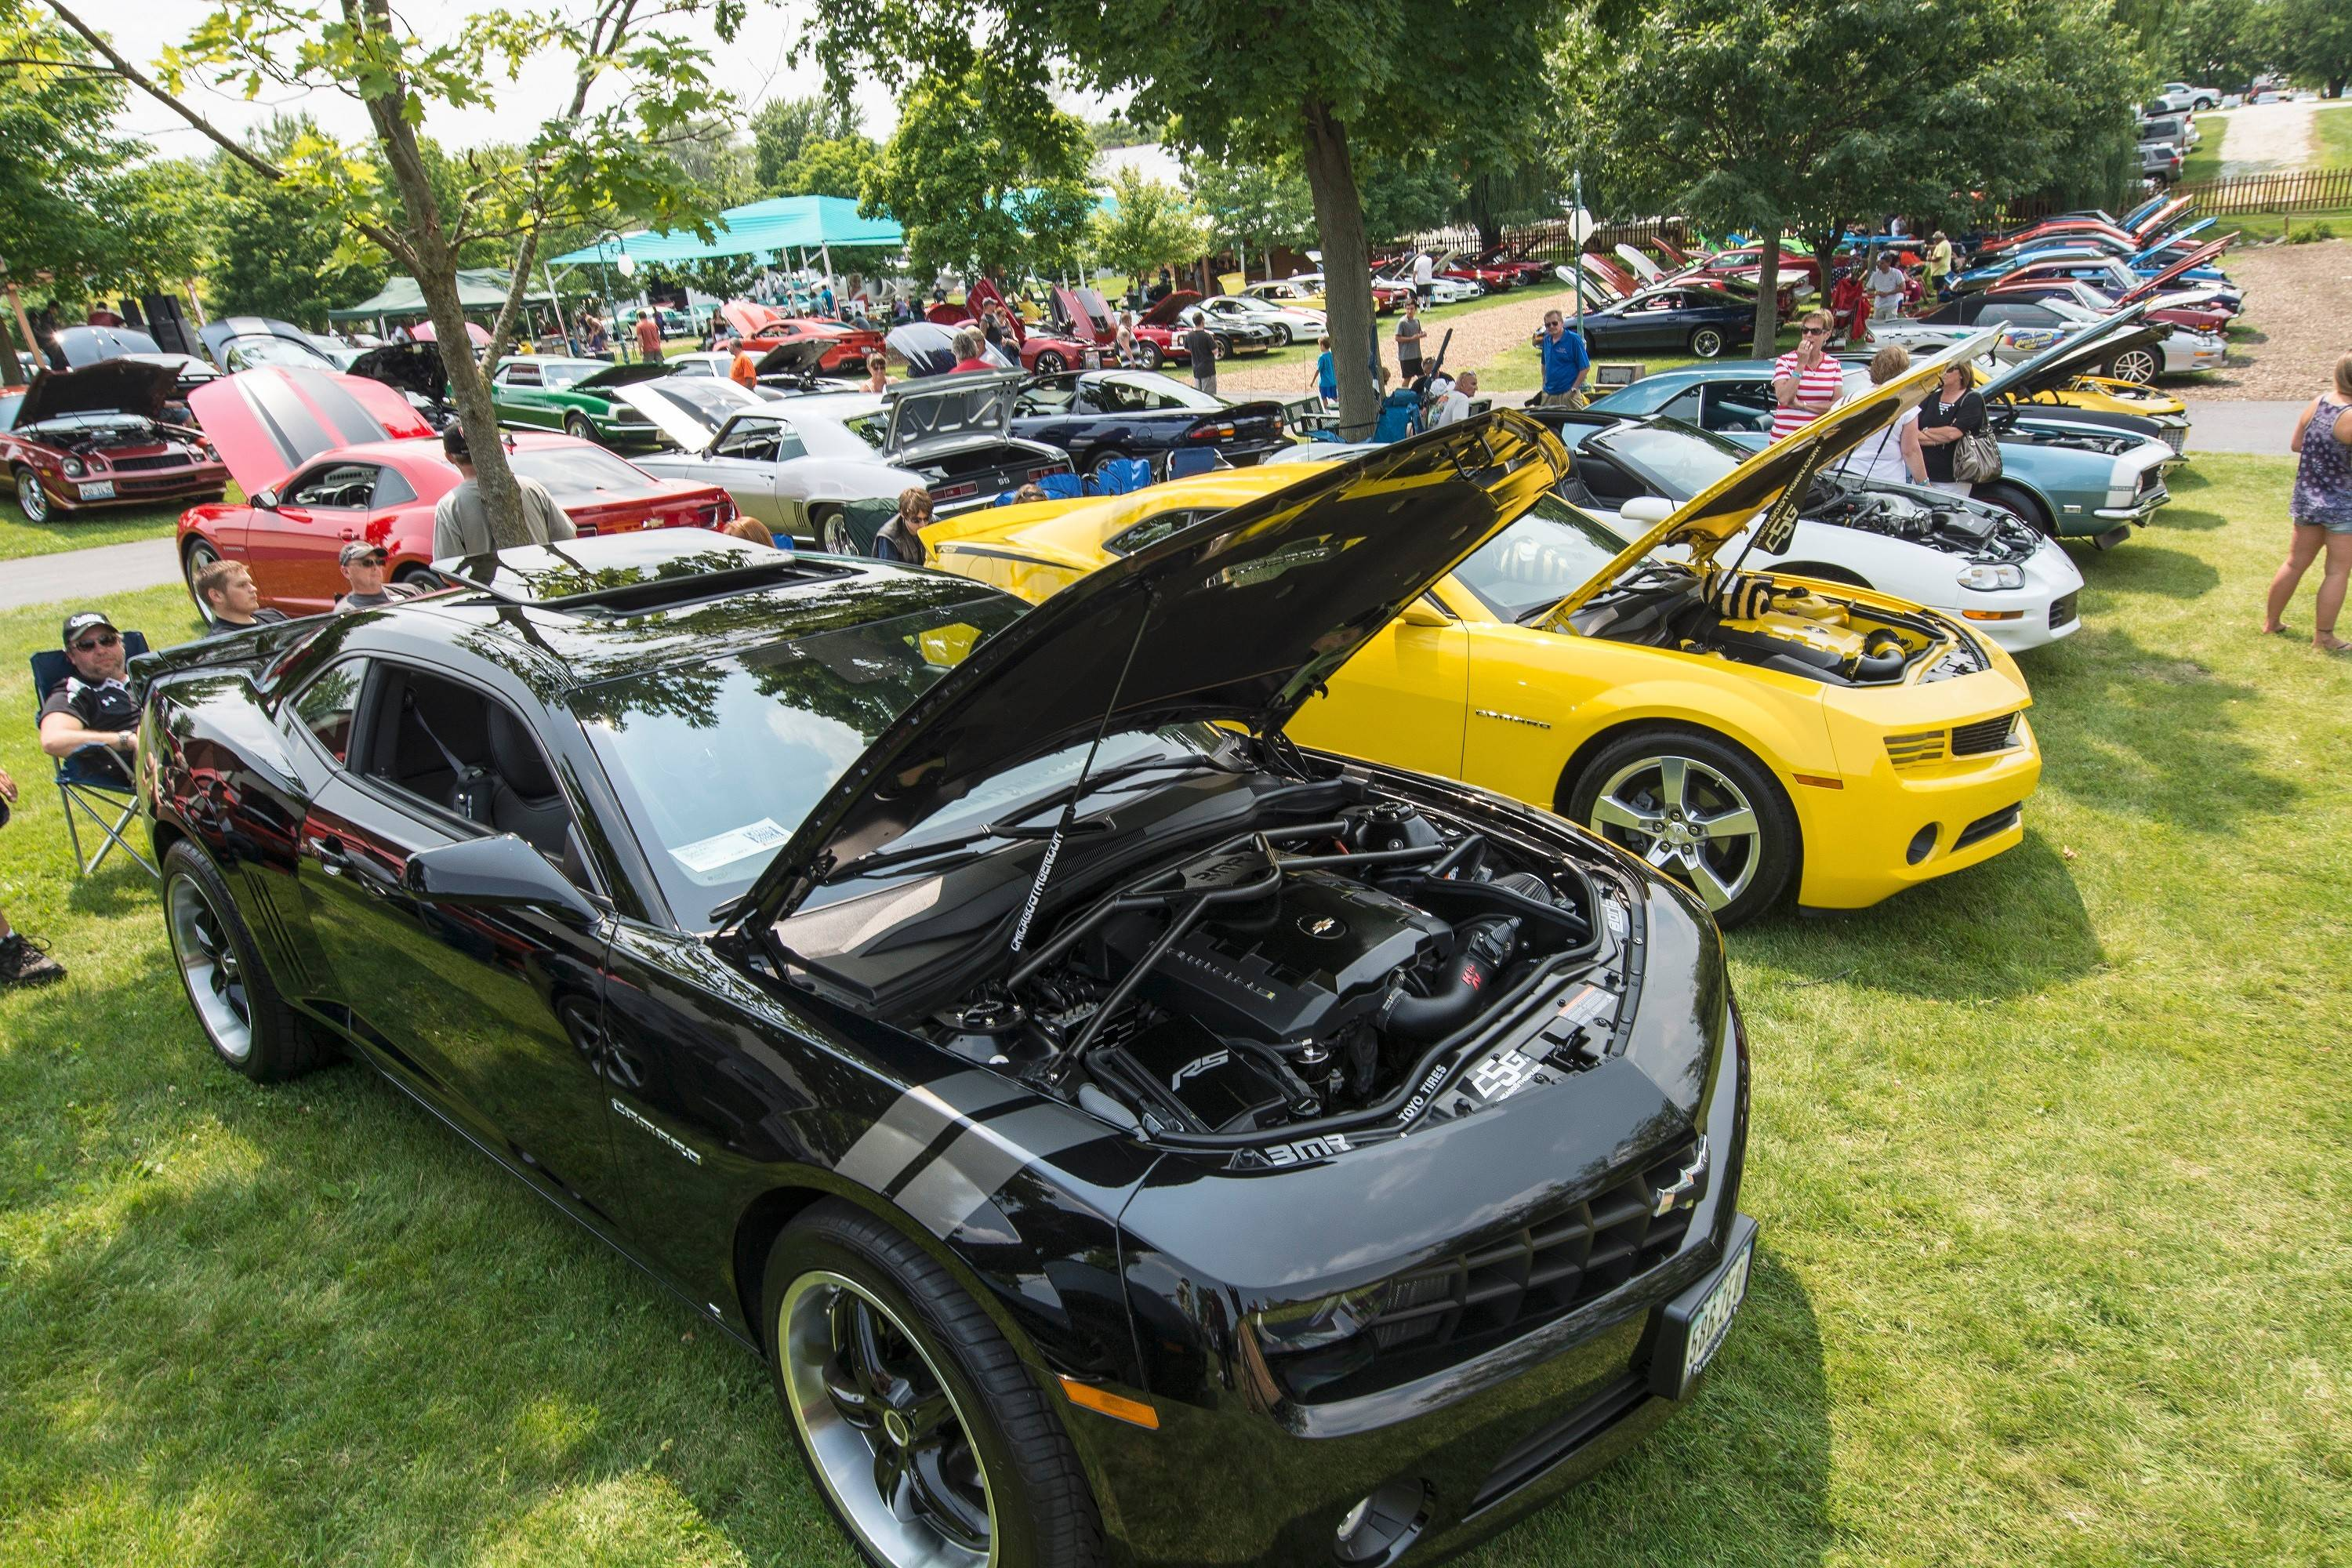 About 150 suburban Camaro owners participated in the annual show.